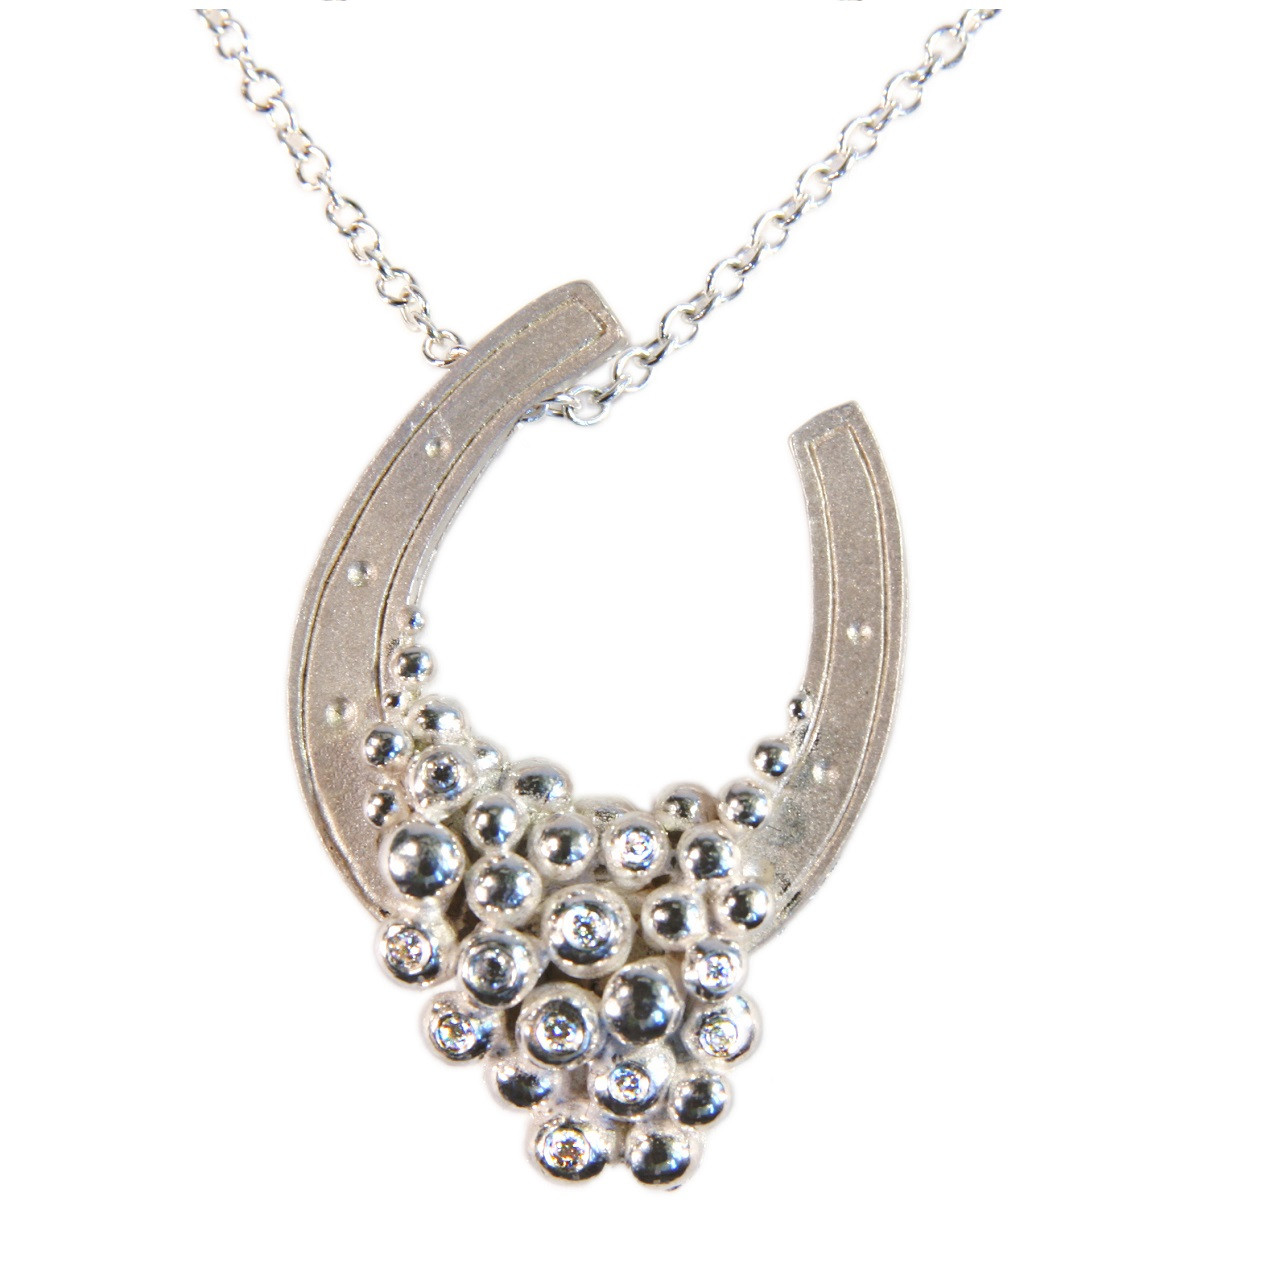 Lucky you equestrian horseshoe necklace sterling silver half lucky you horseshoe necklace in silver half filled with diamonds more can be added aloadofball Choice Image